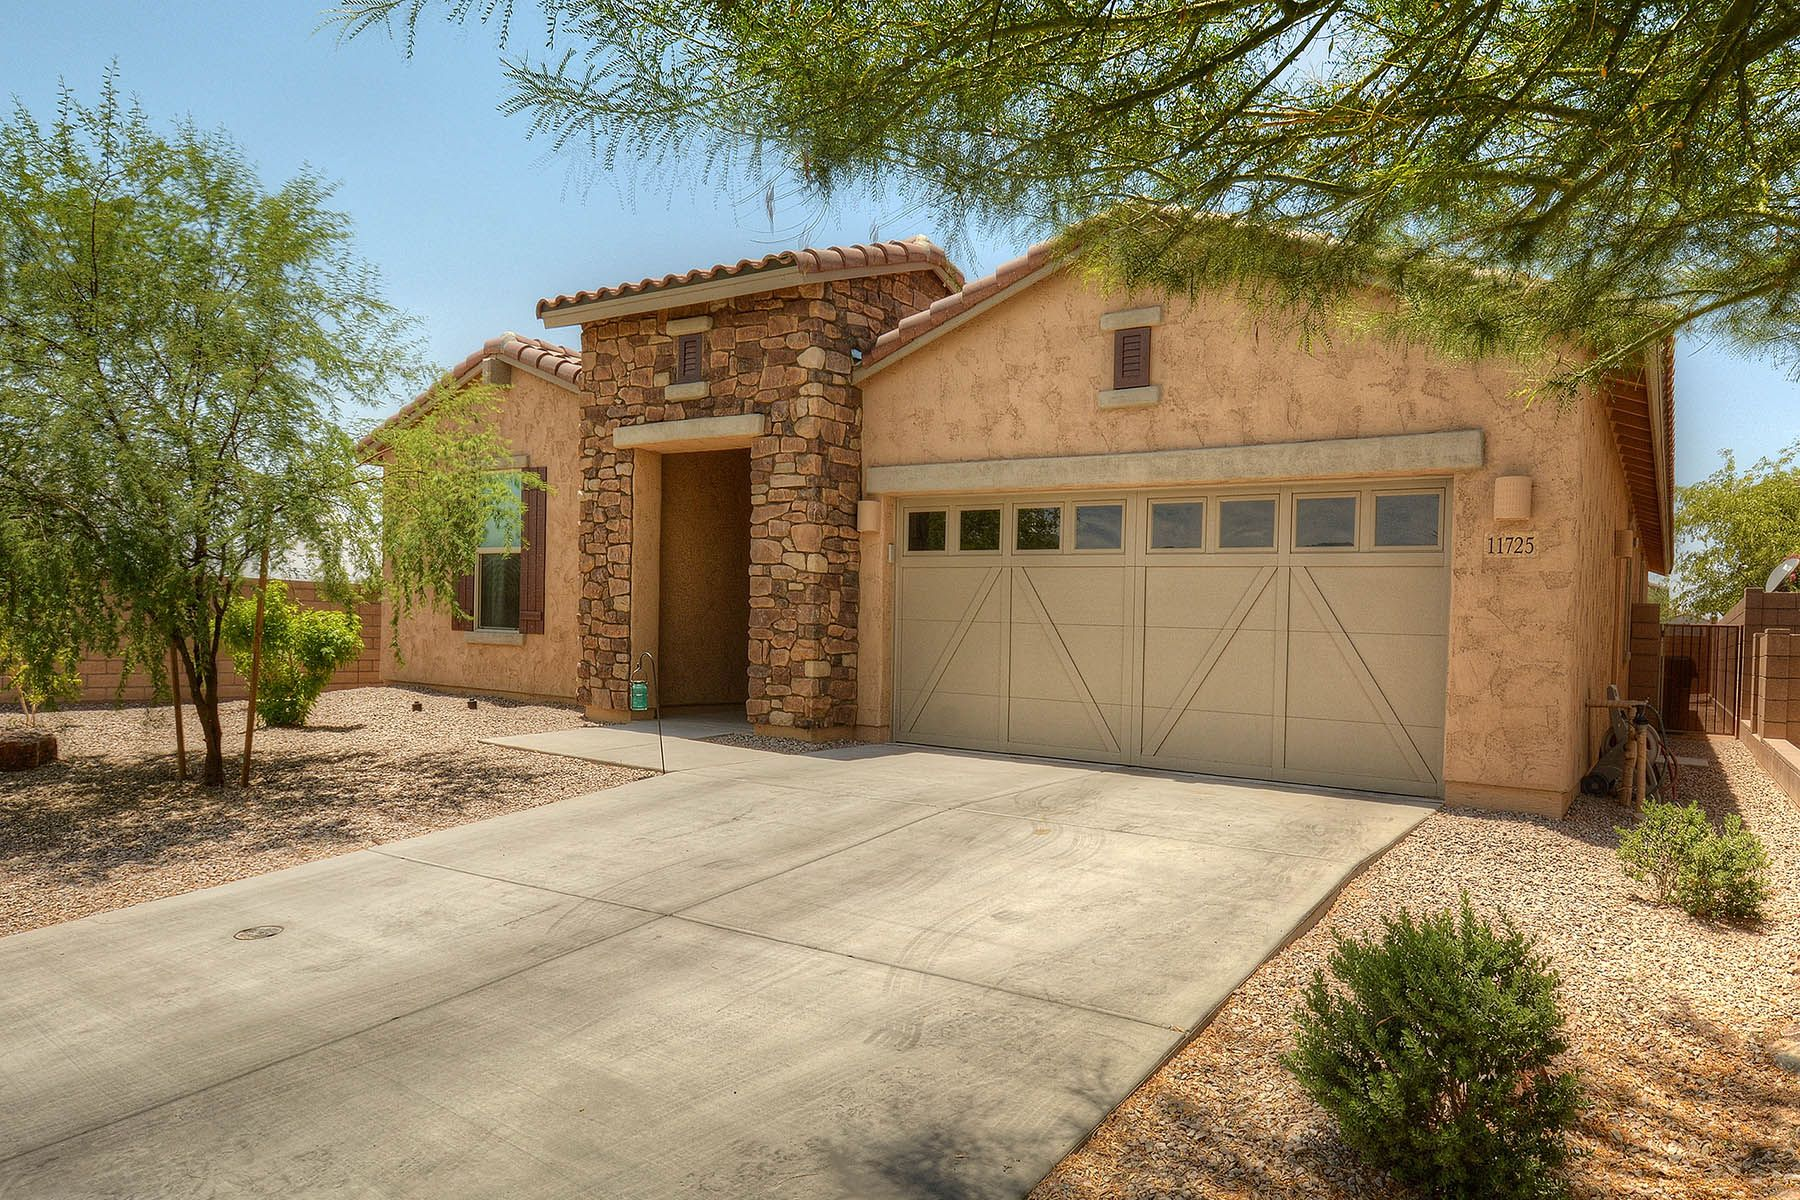 Single Family Home for Sale at Beautifully Appointed 4 Bedroom / 3 Bath Home 11725 N Sweet Orange Place Tucson, Arizona, 85742 United States